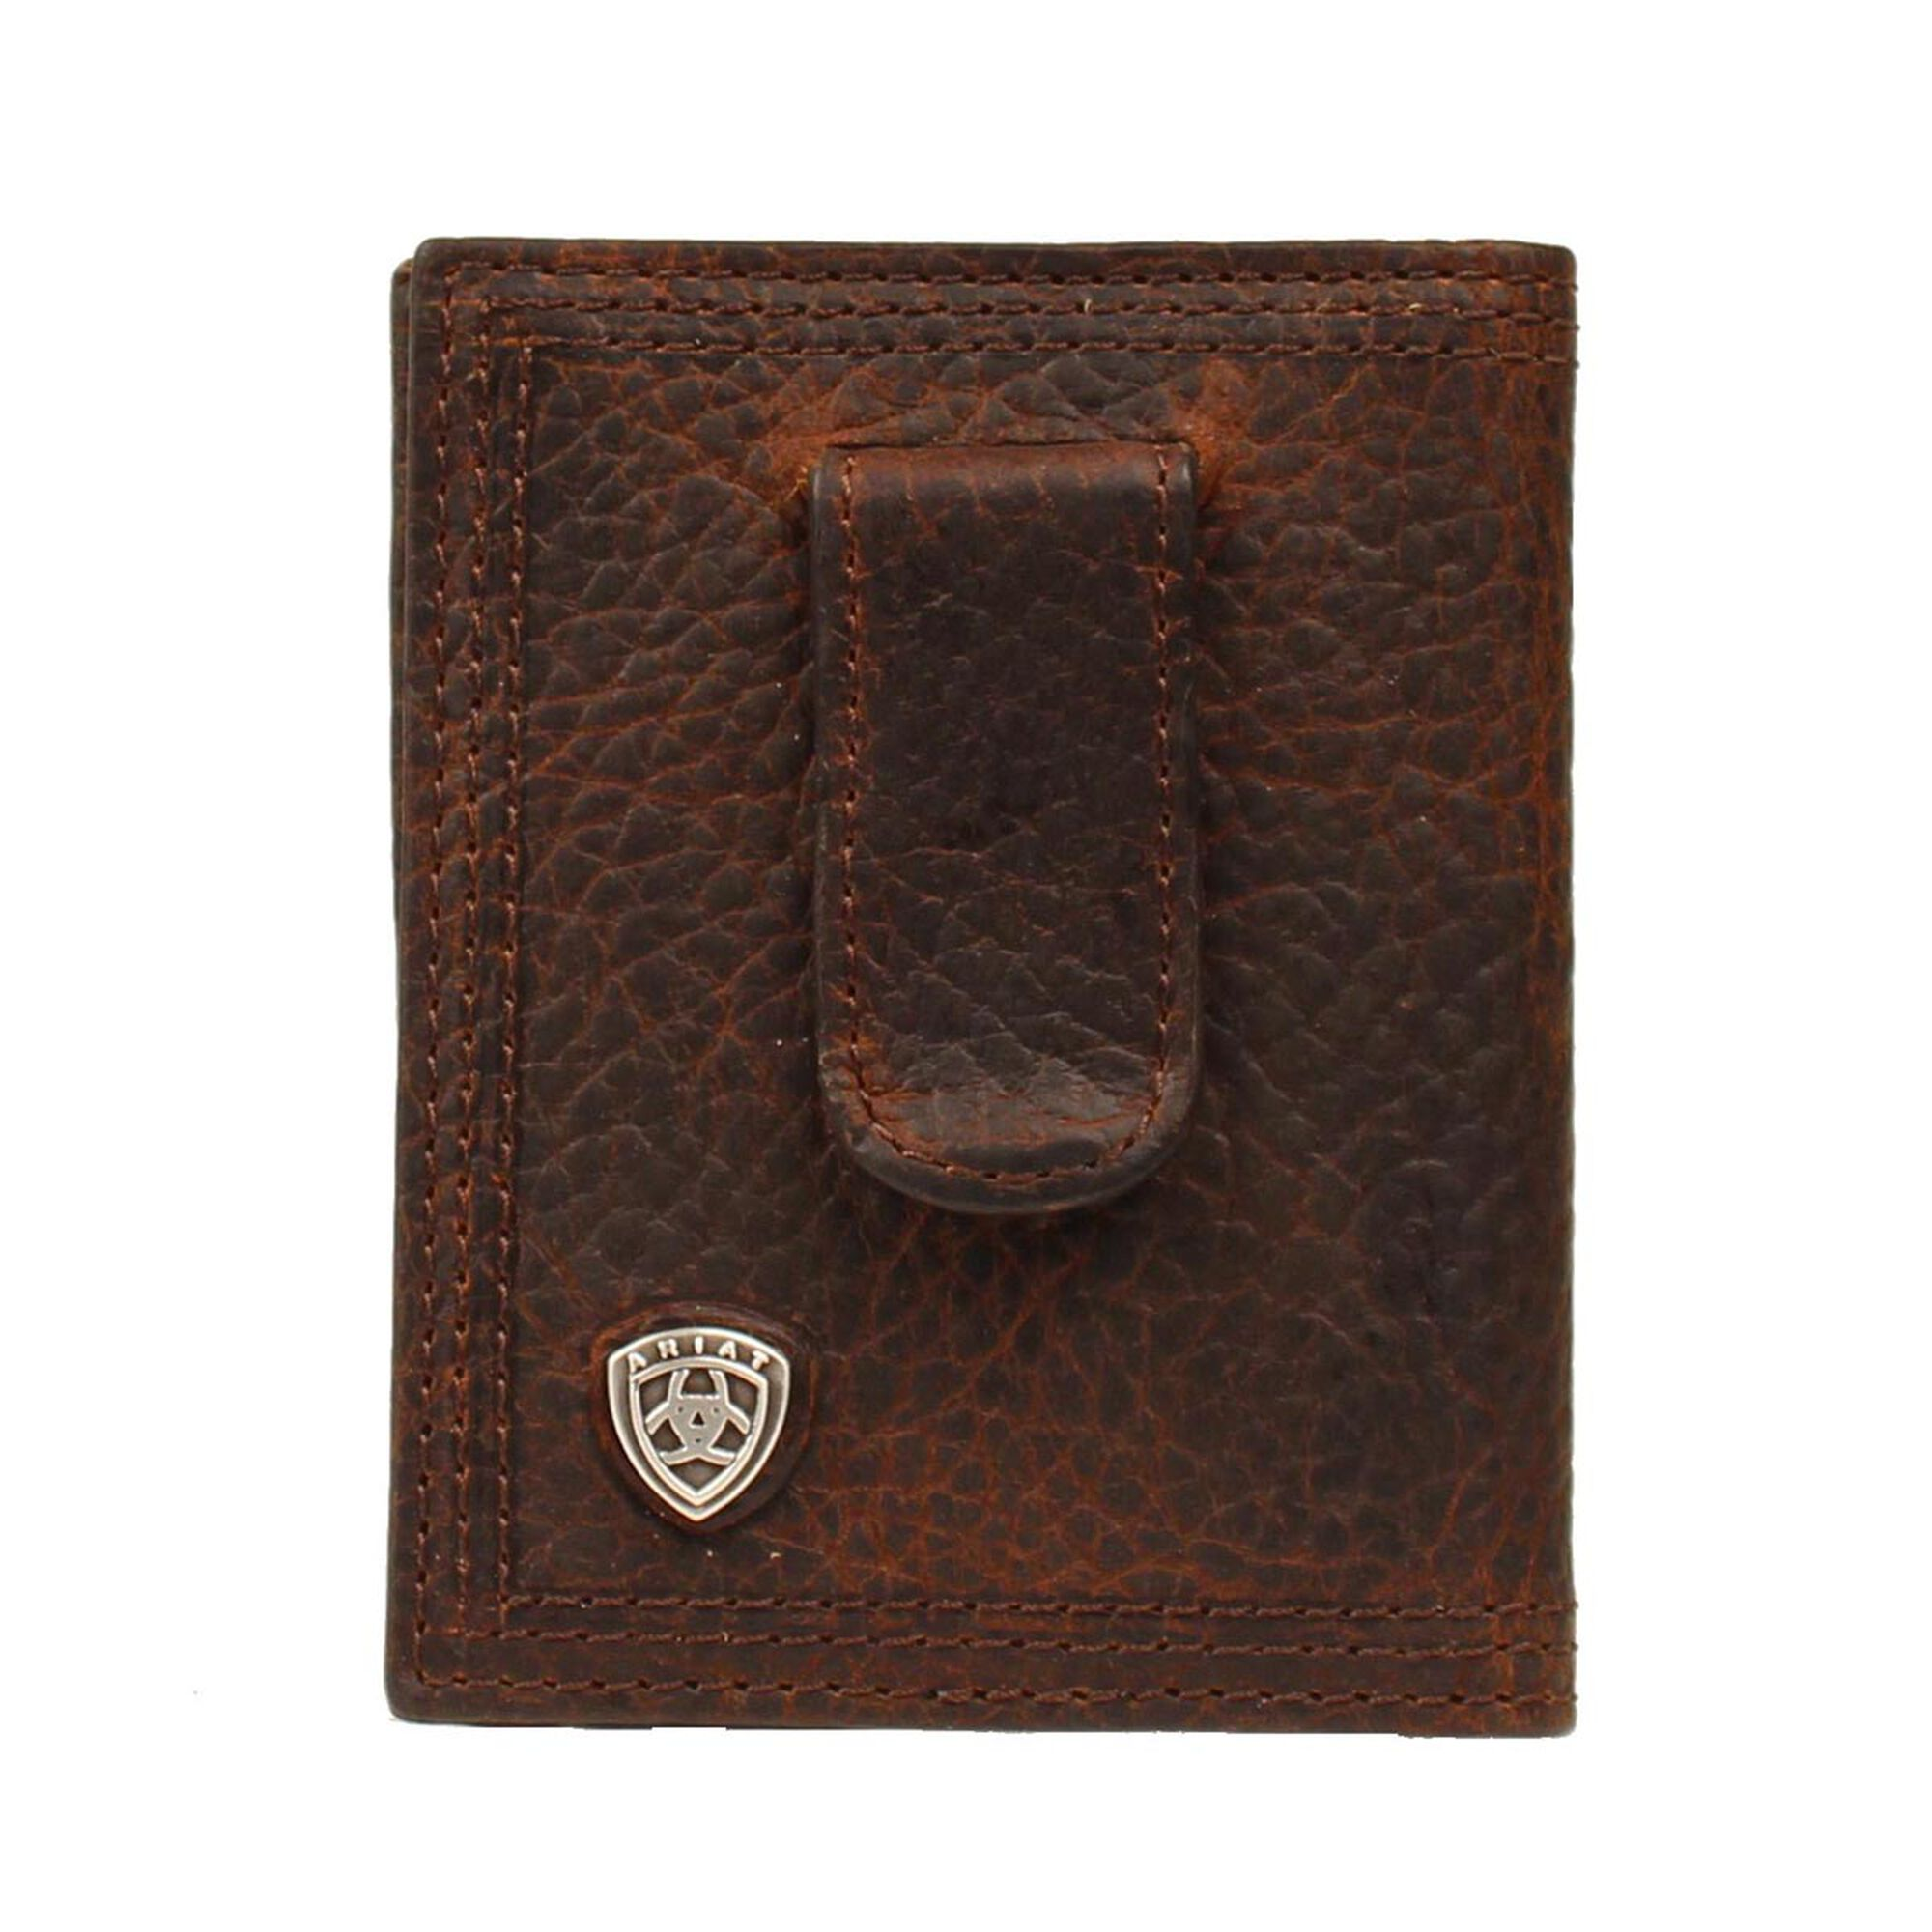 Money Clid Bifold Wallet